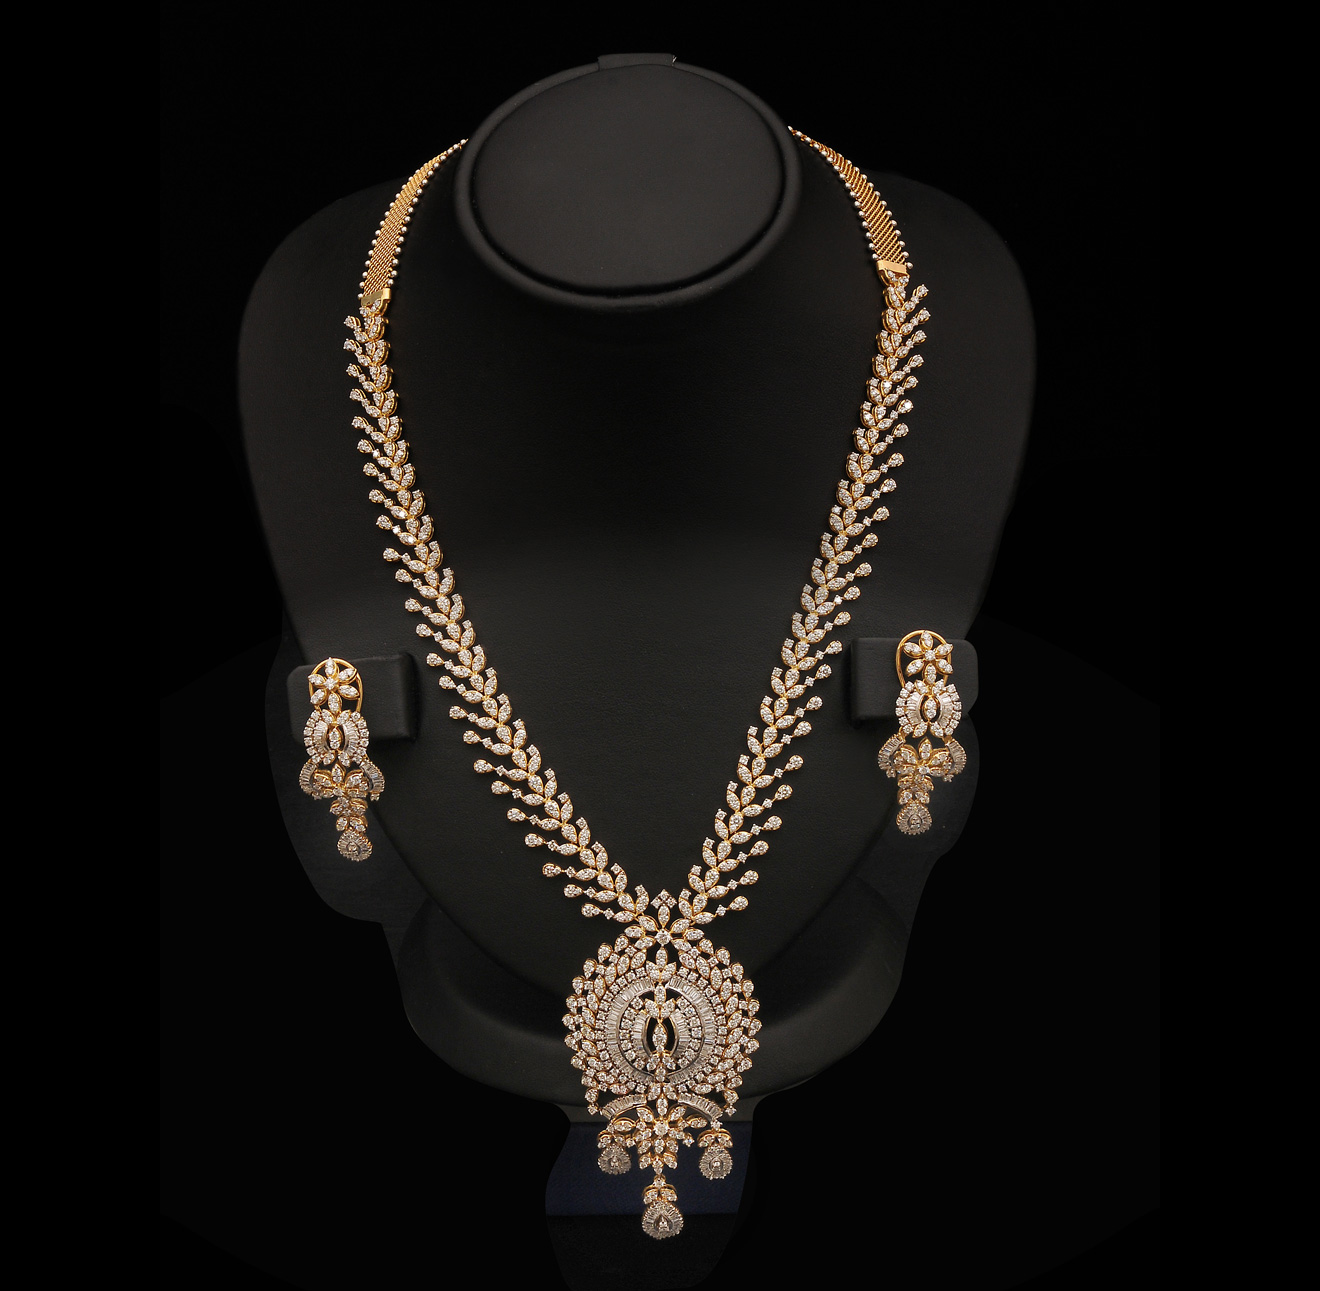 Fabulous Indian Diamond Necklace Designs 1320 x 1291 · 307 kB · jpeg